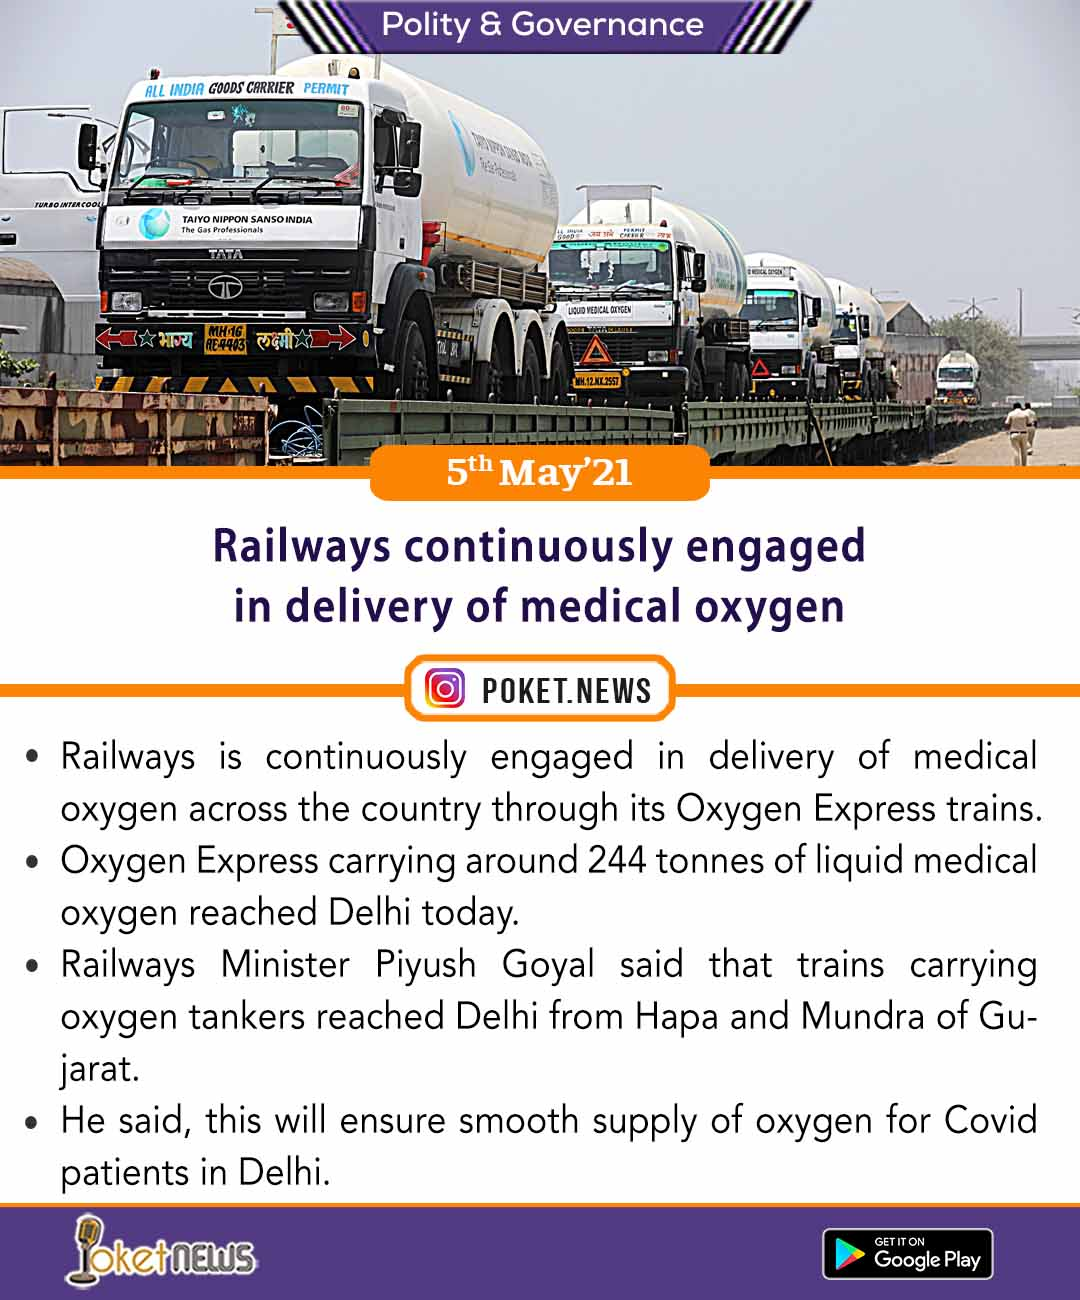 Railways continuously engaged in delivery of medical oxygen